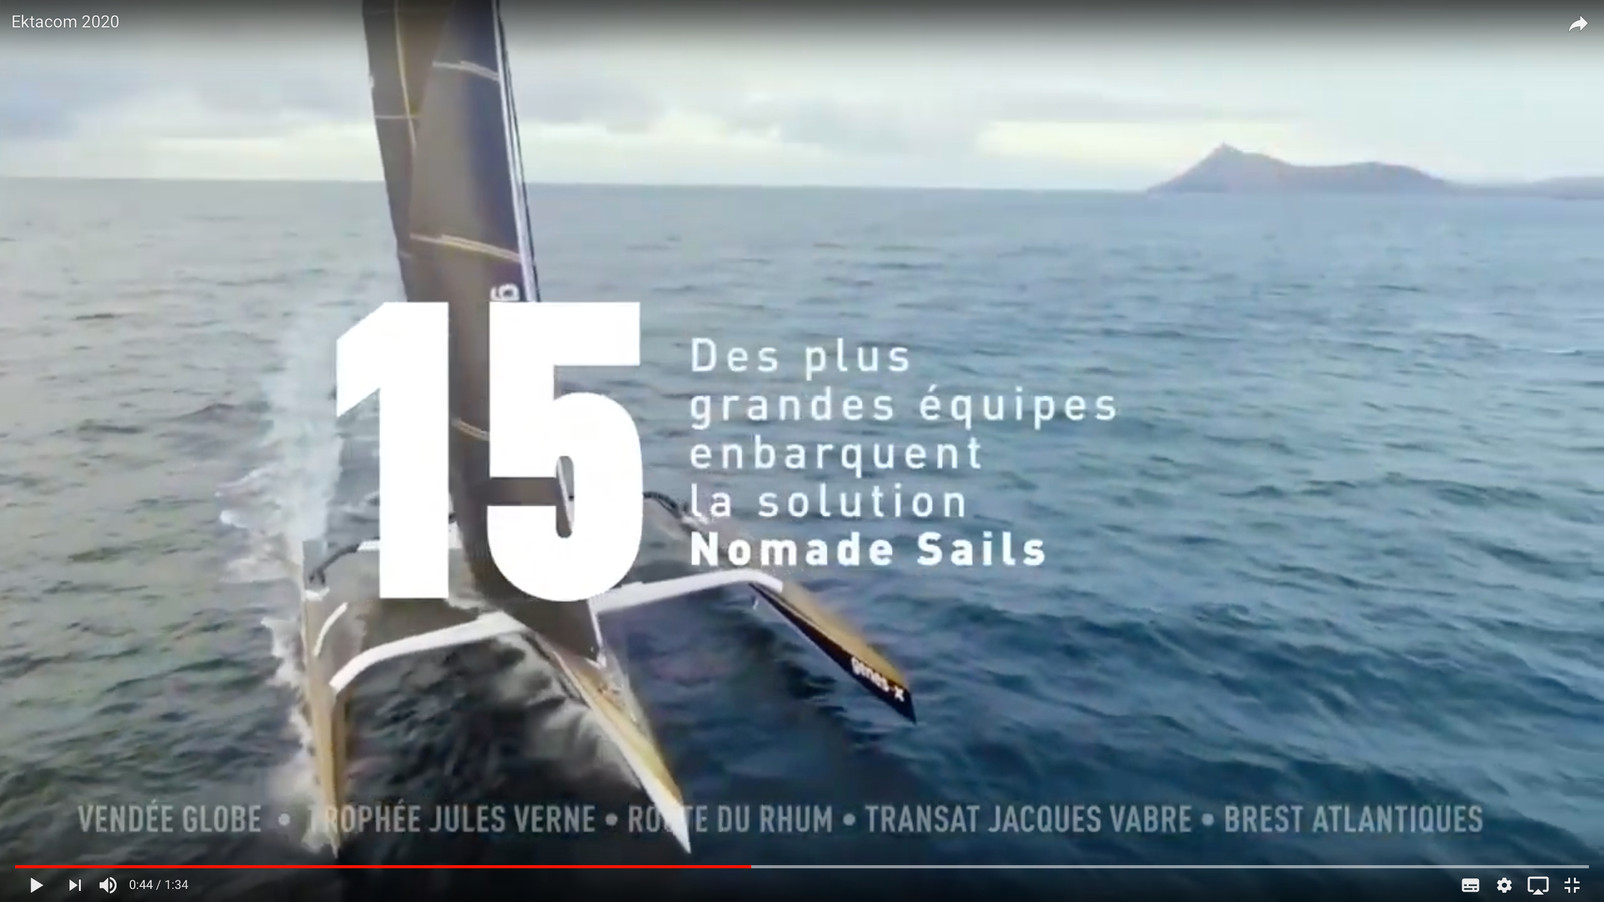 Course à la voile en direct Ektacom